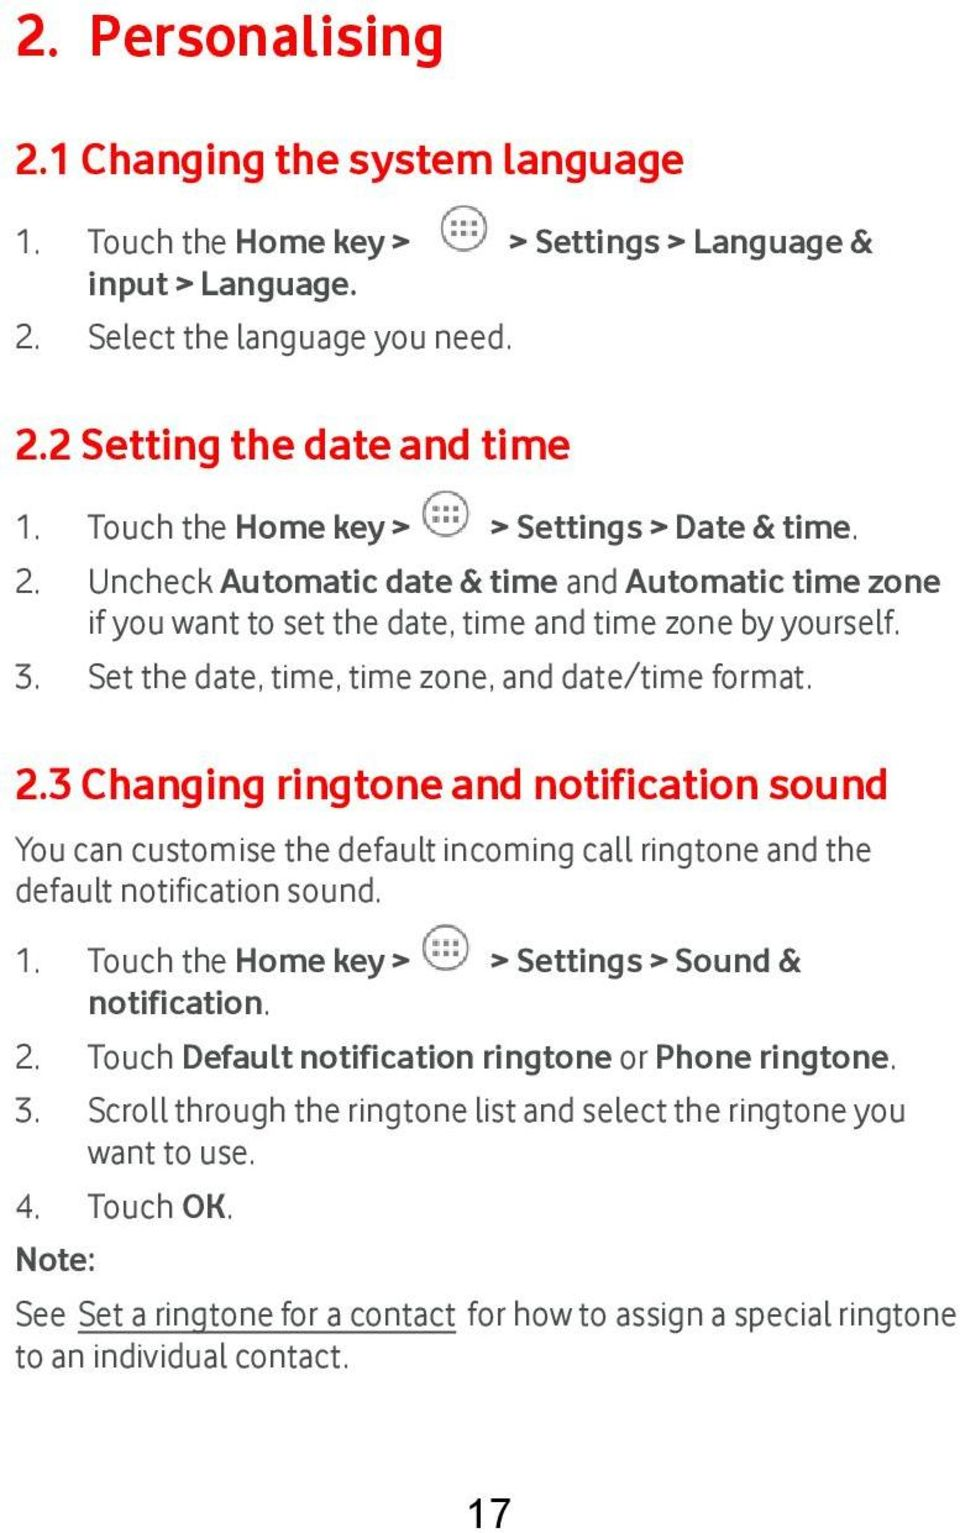 Set the date, time, time zone, and date/time format. 2.3 Changing ringtone and notification sound You can customise the default incoming call ringtone and the default notification sound. 1.